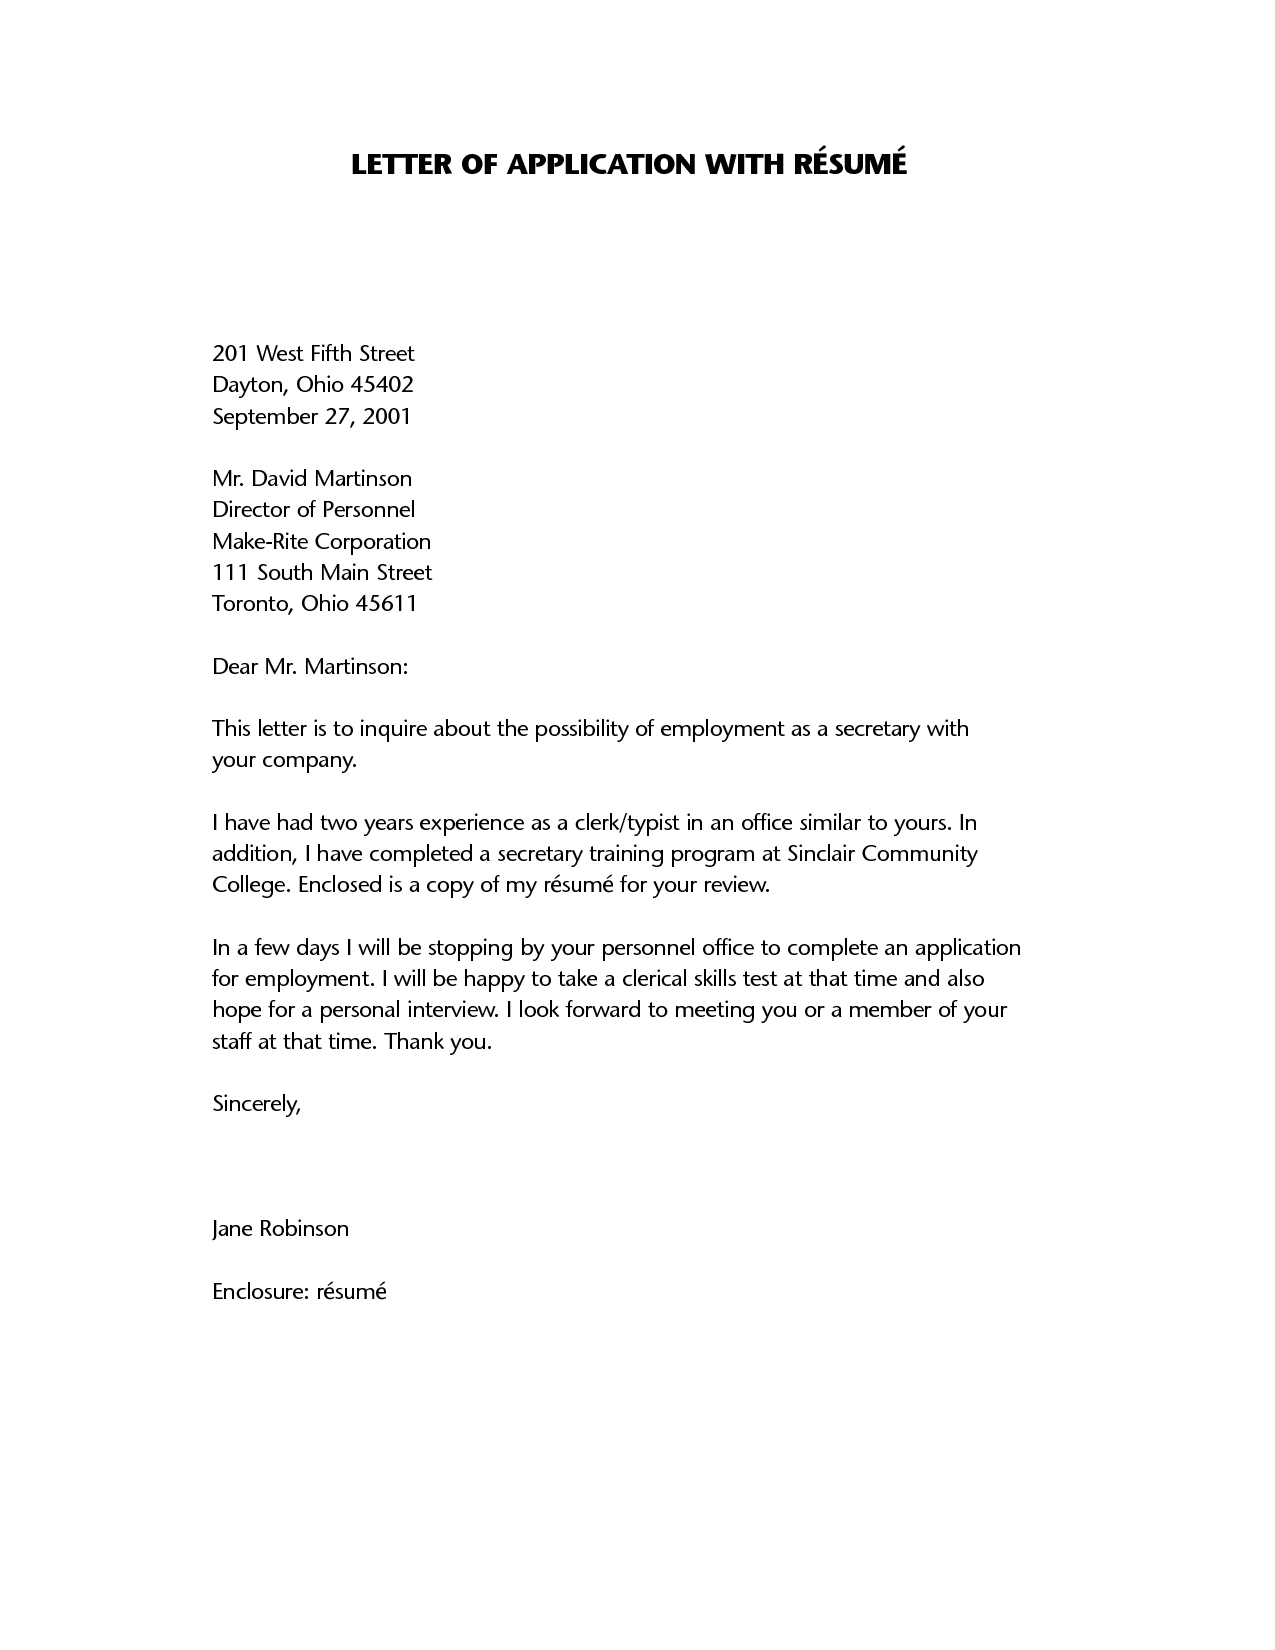 Resume Covering Letter Example Gallery letter format formal example